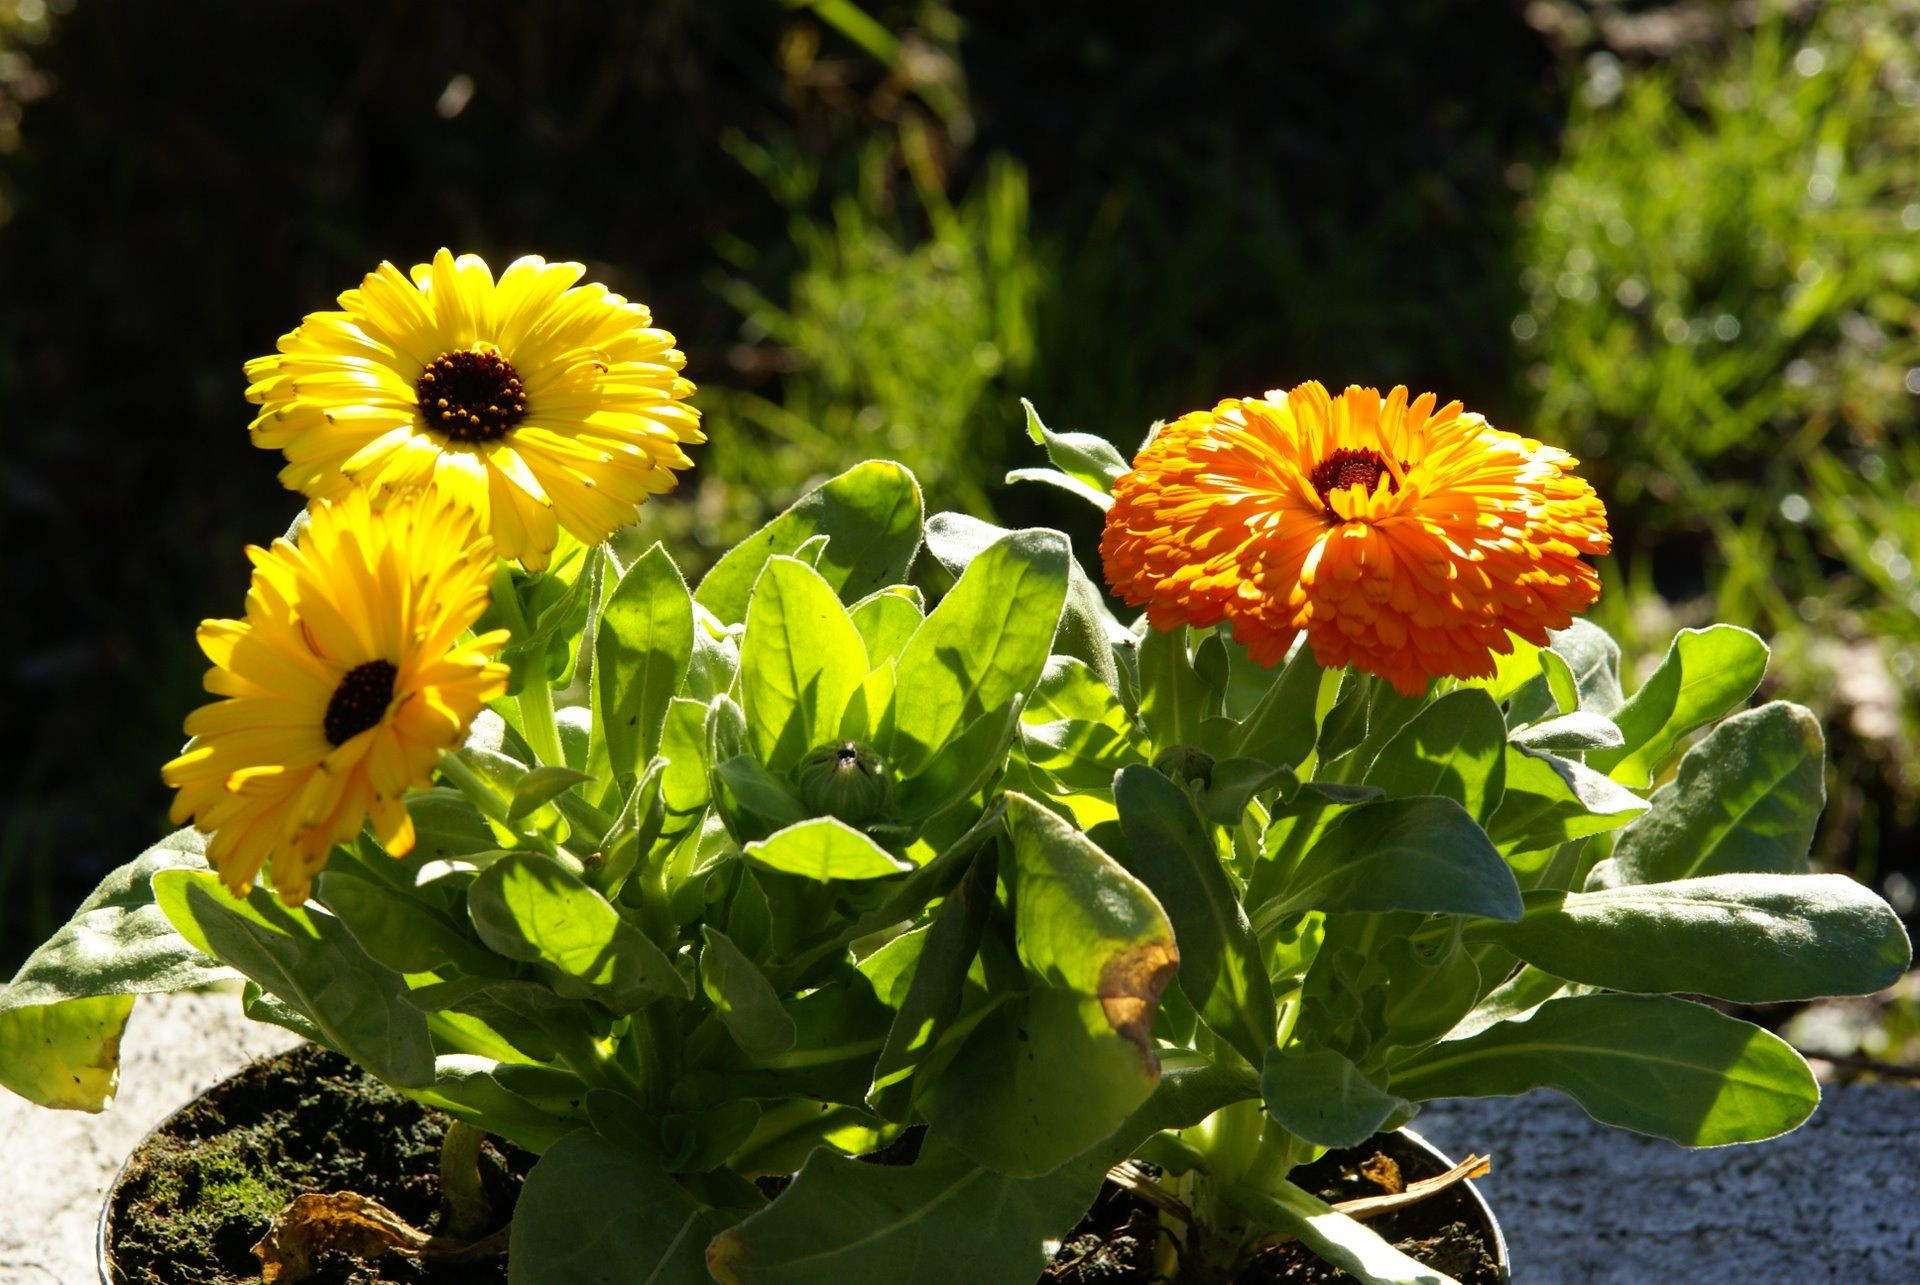 Calendula officinalis Pot Marigold all parts edible